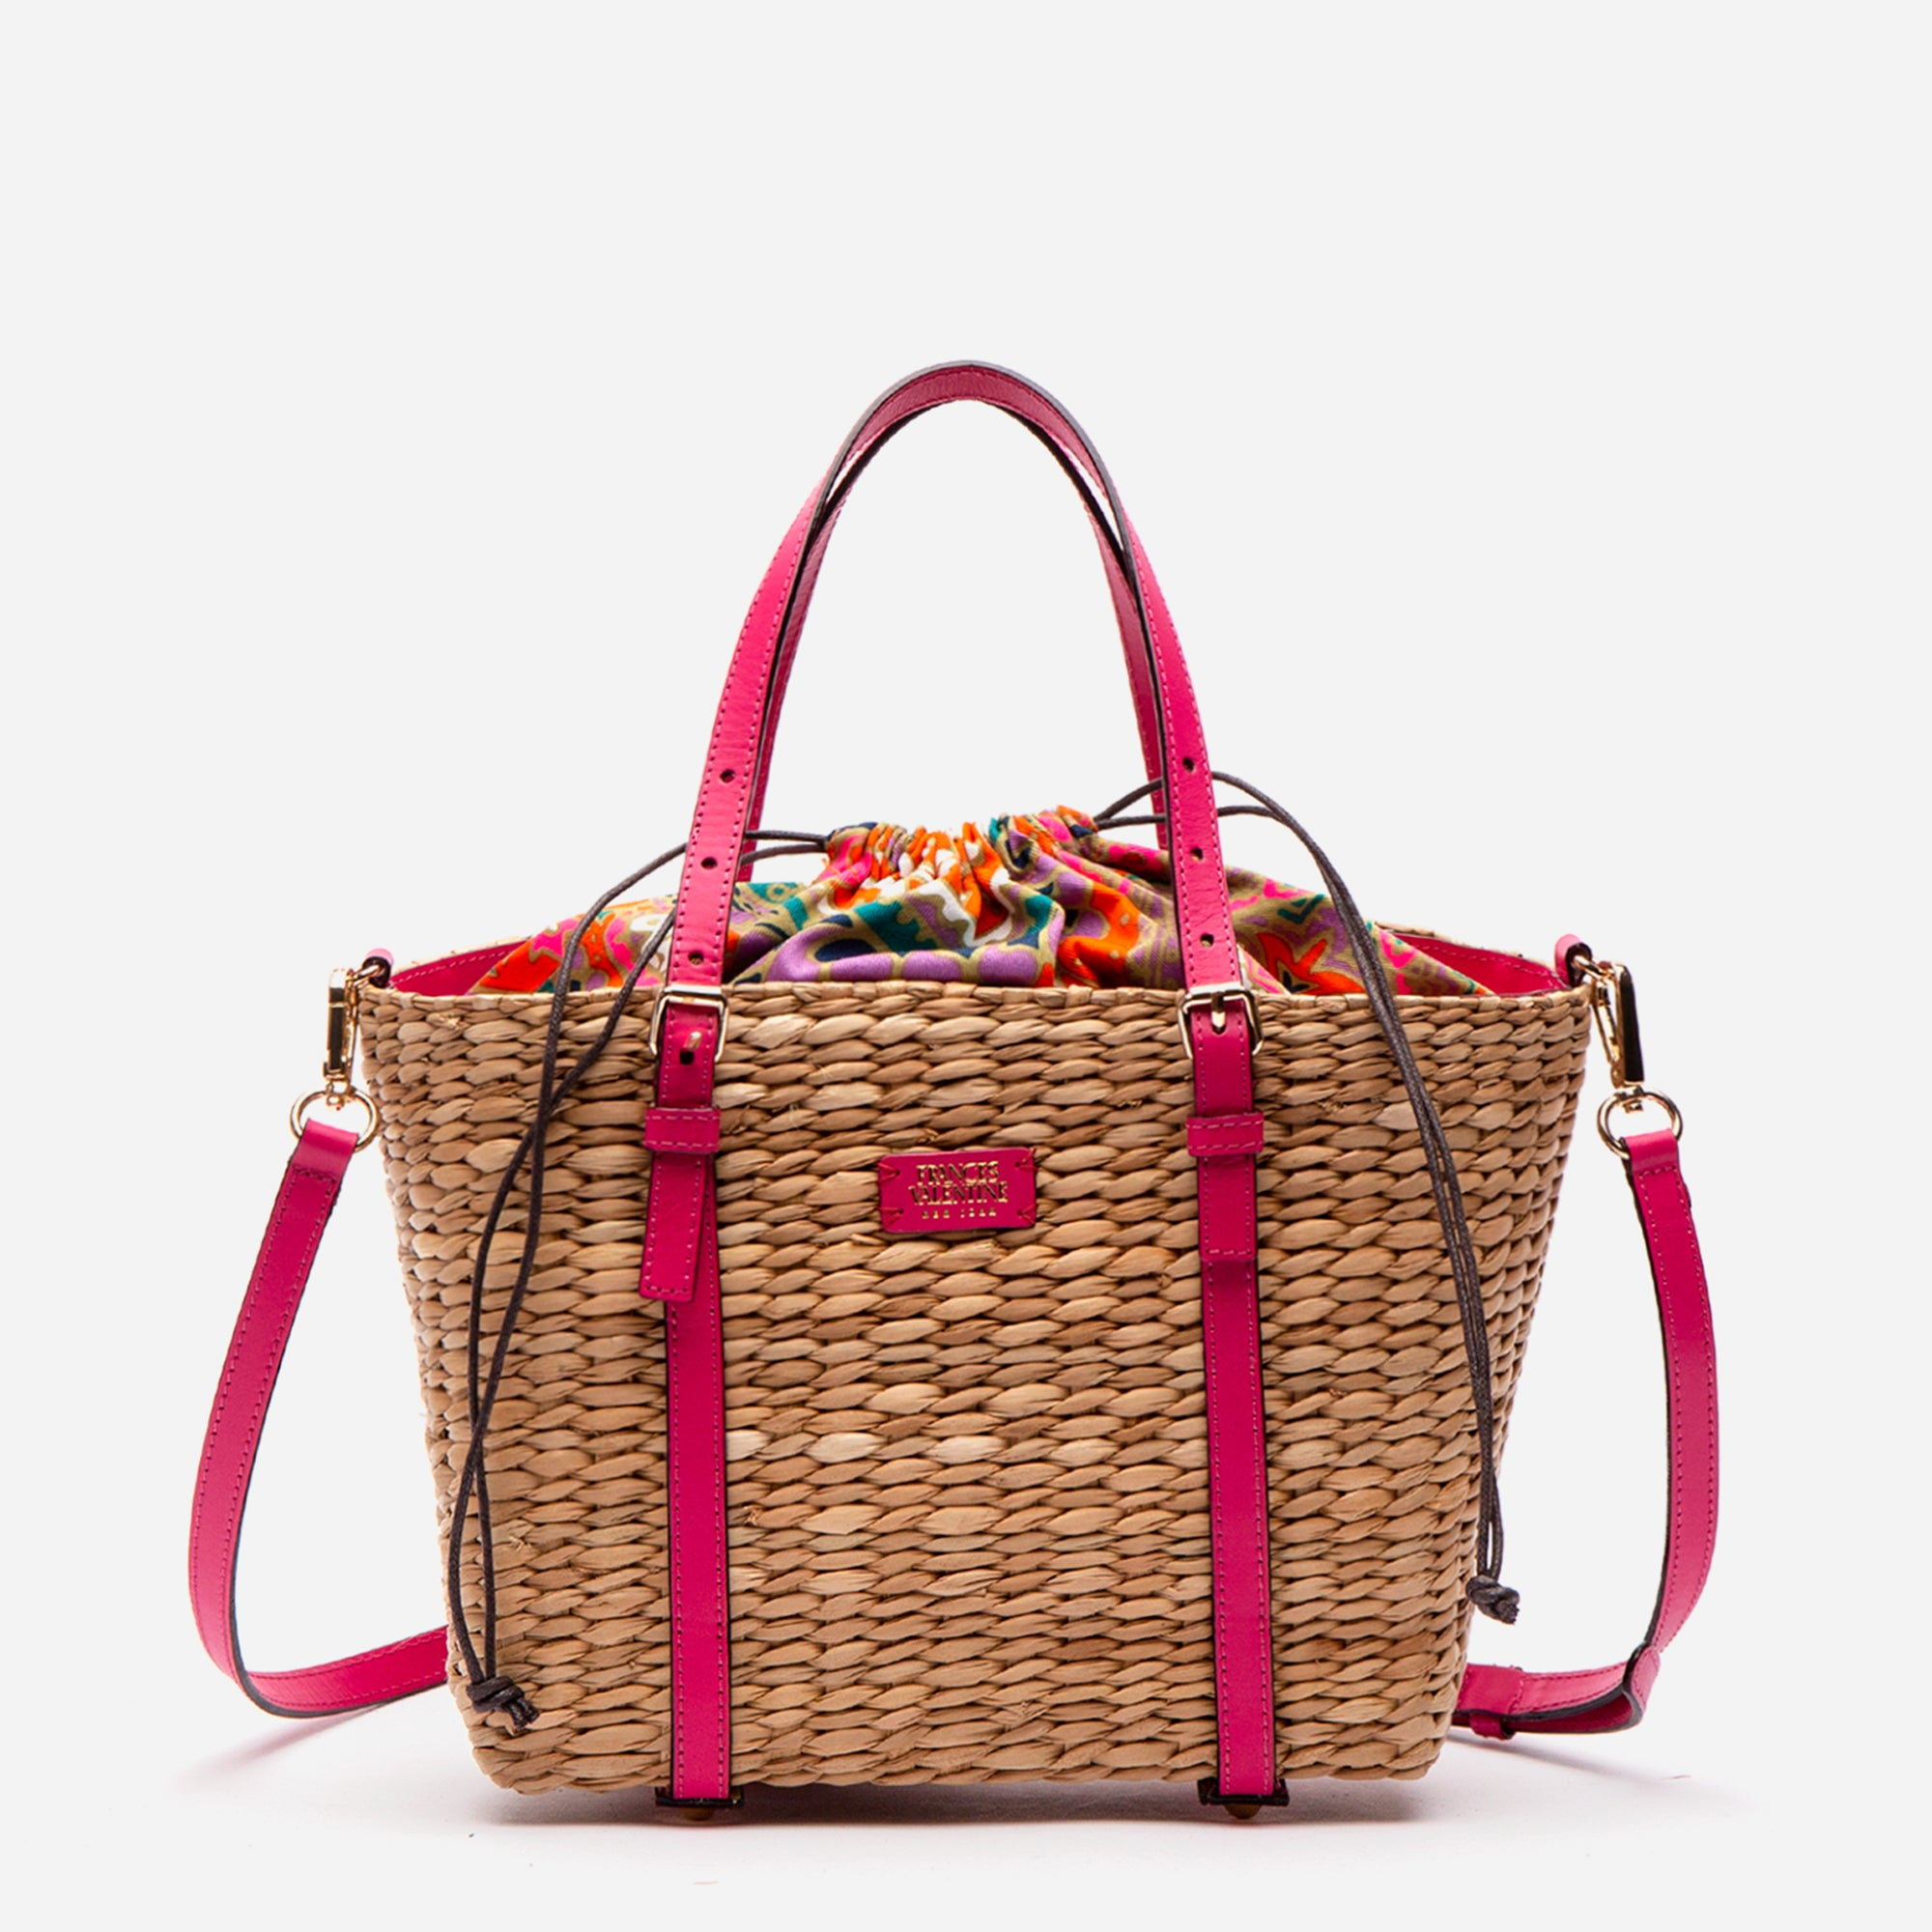 Small Woven Basket Tote Bright Pink Vachetta